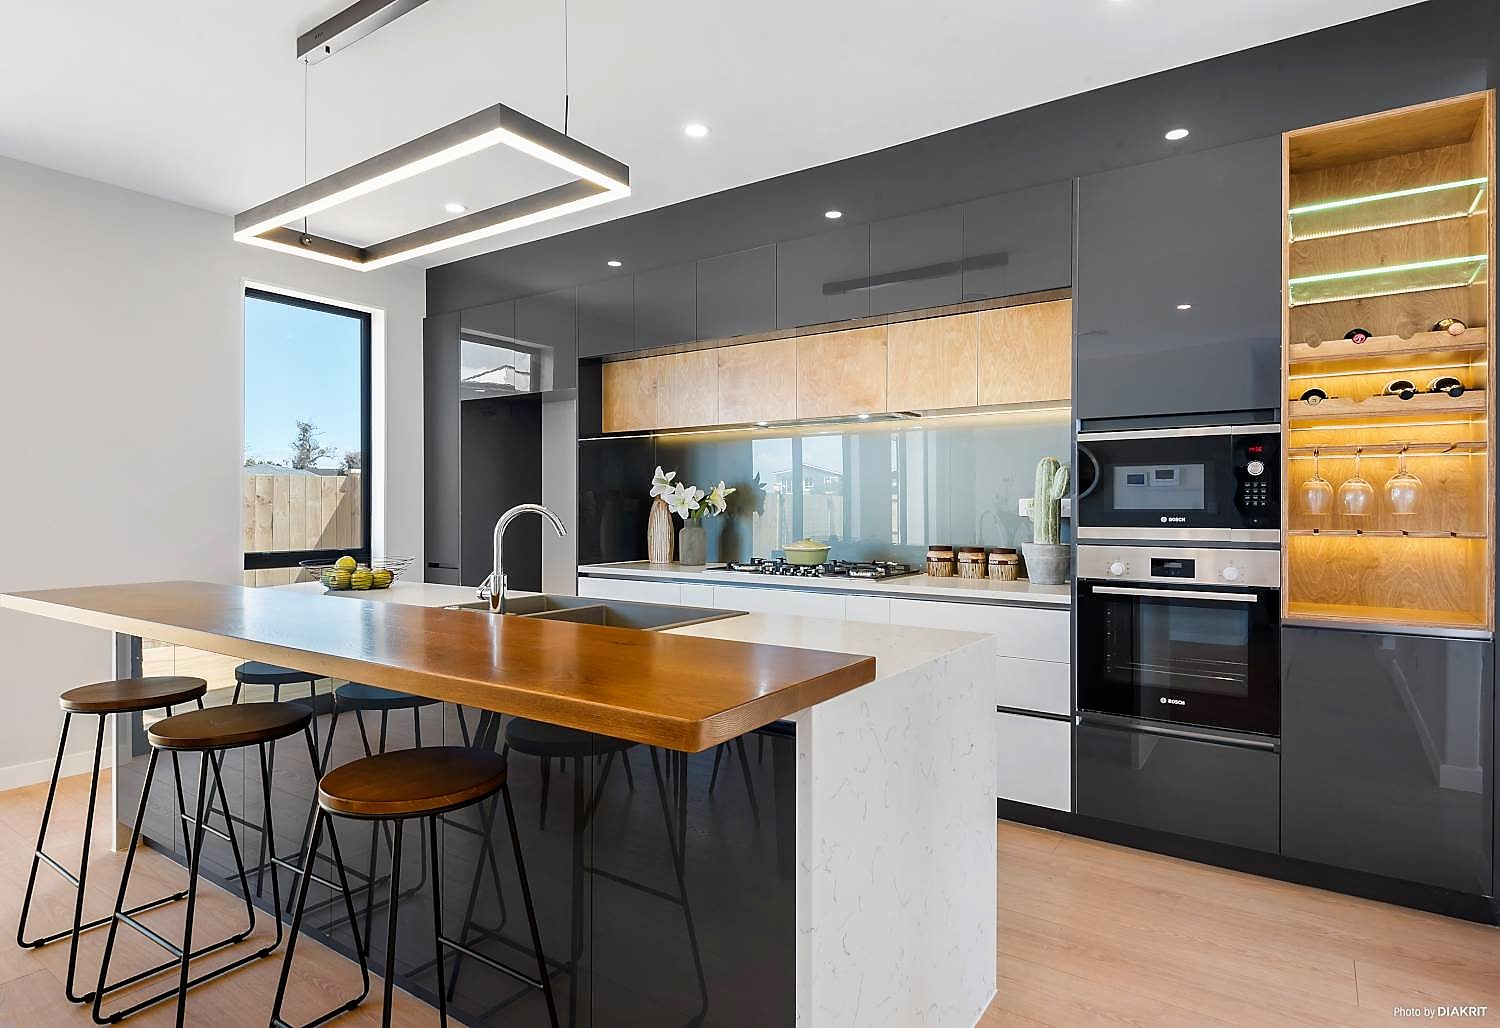 Hobsonville S Kitchen Gj Kitchens Auckland Kitchens New Zealand Kitchens Manufacturers